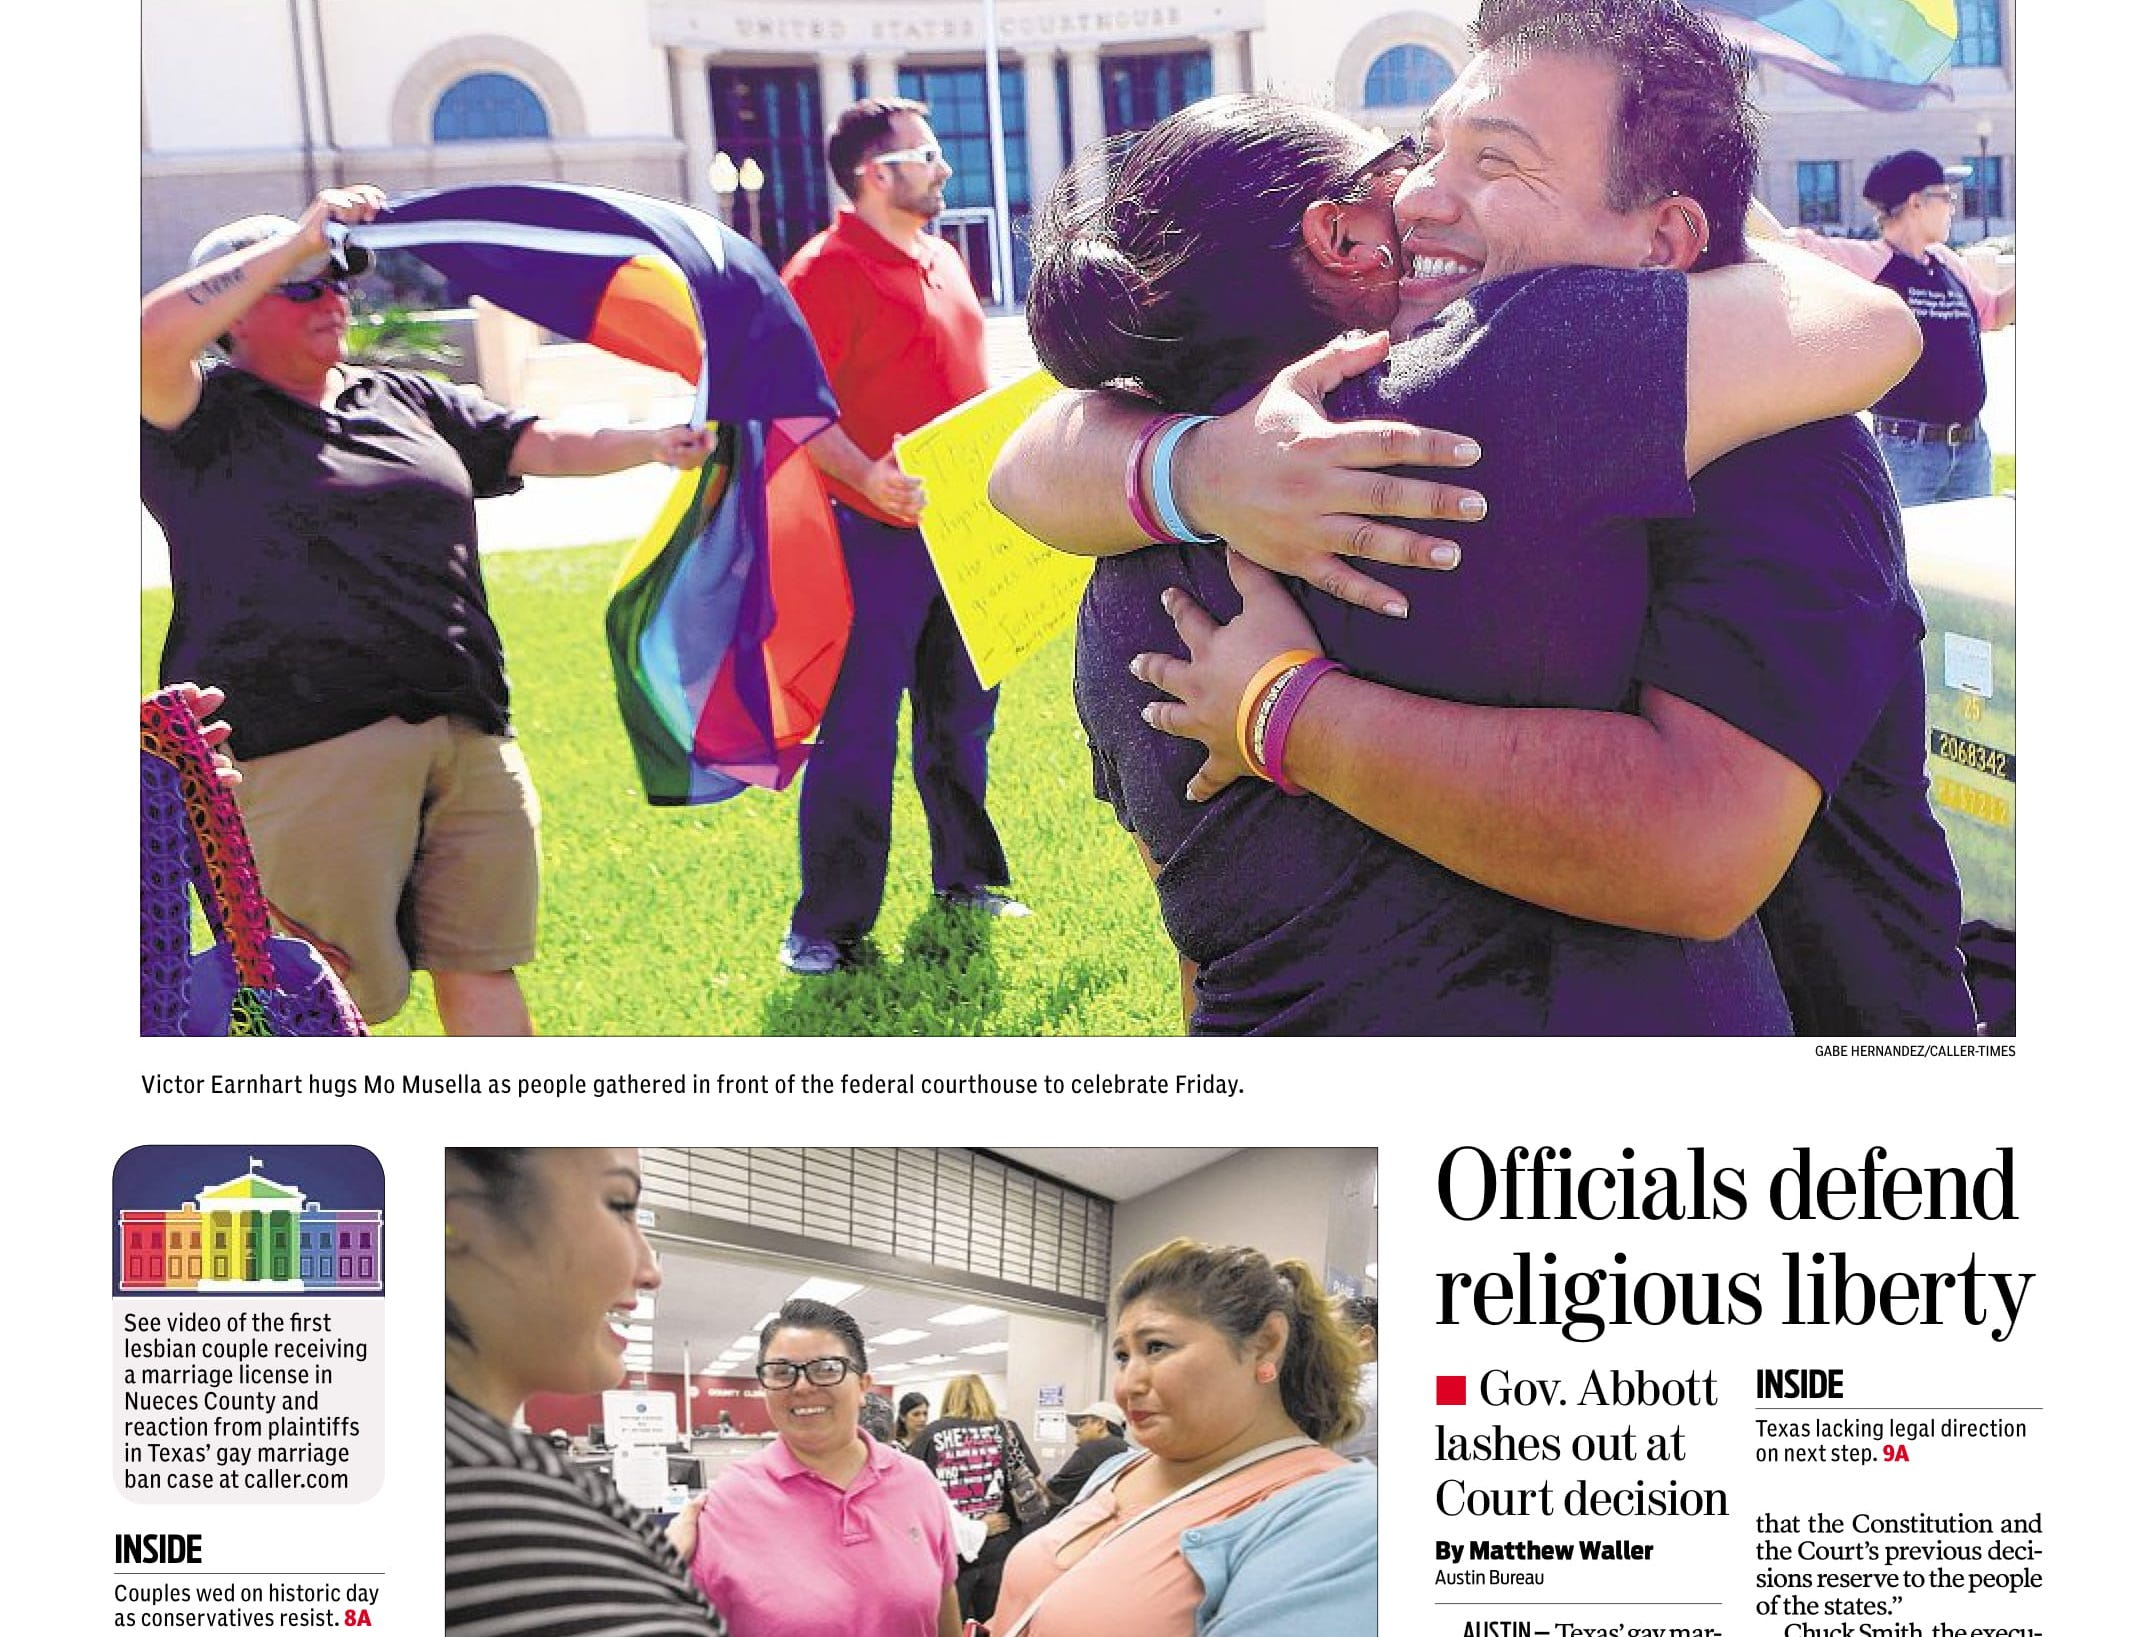 The front page of the Caller-Times on June 27, 2015 after same-sex marriage was legalized across America.